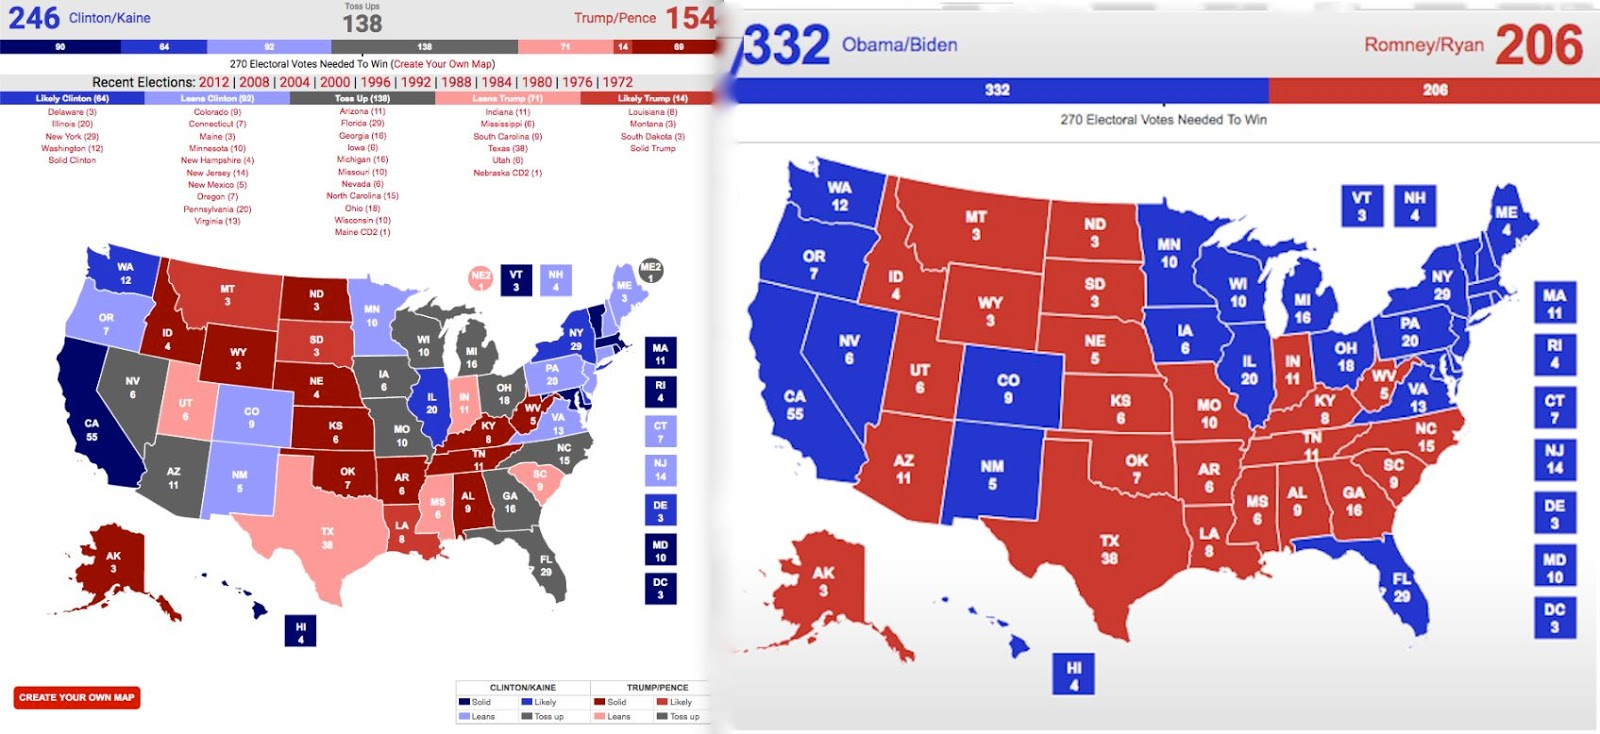 Suite Sports: It Ain\'t Over, But The Map Looks Bleak for Trump